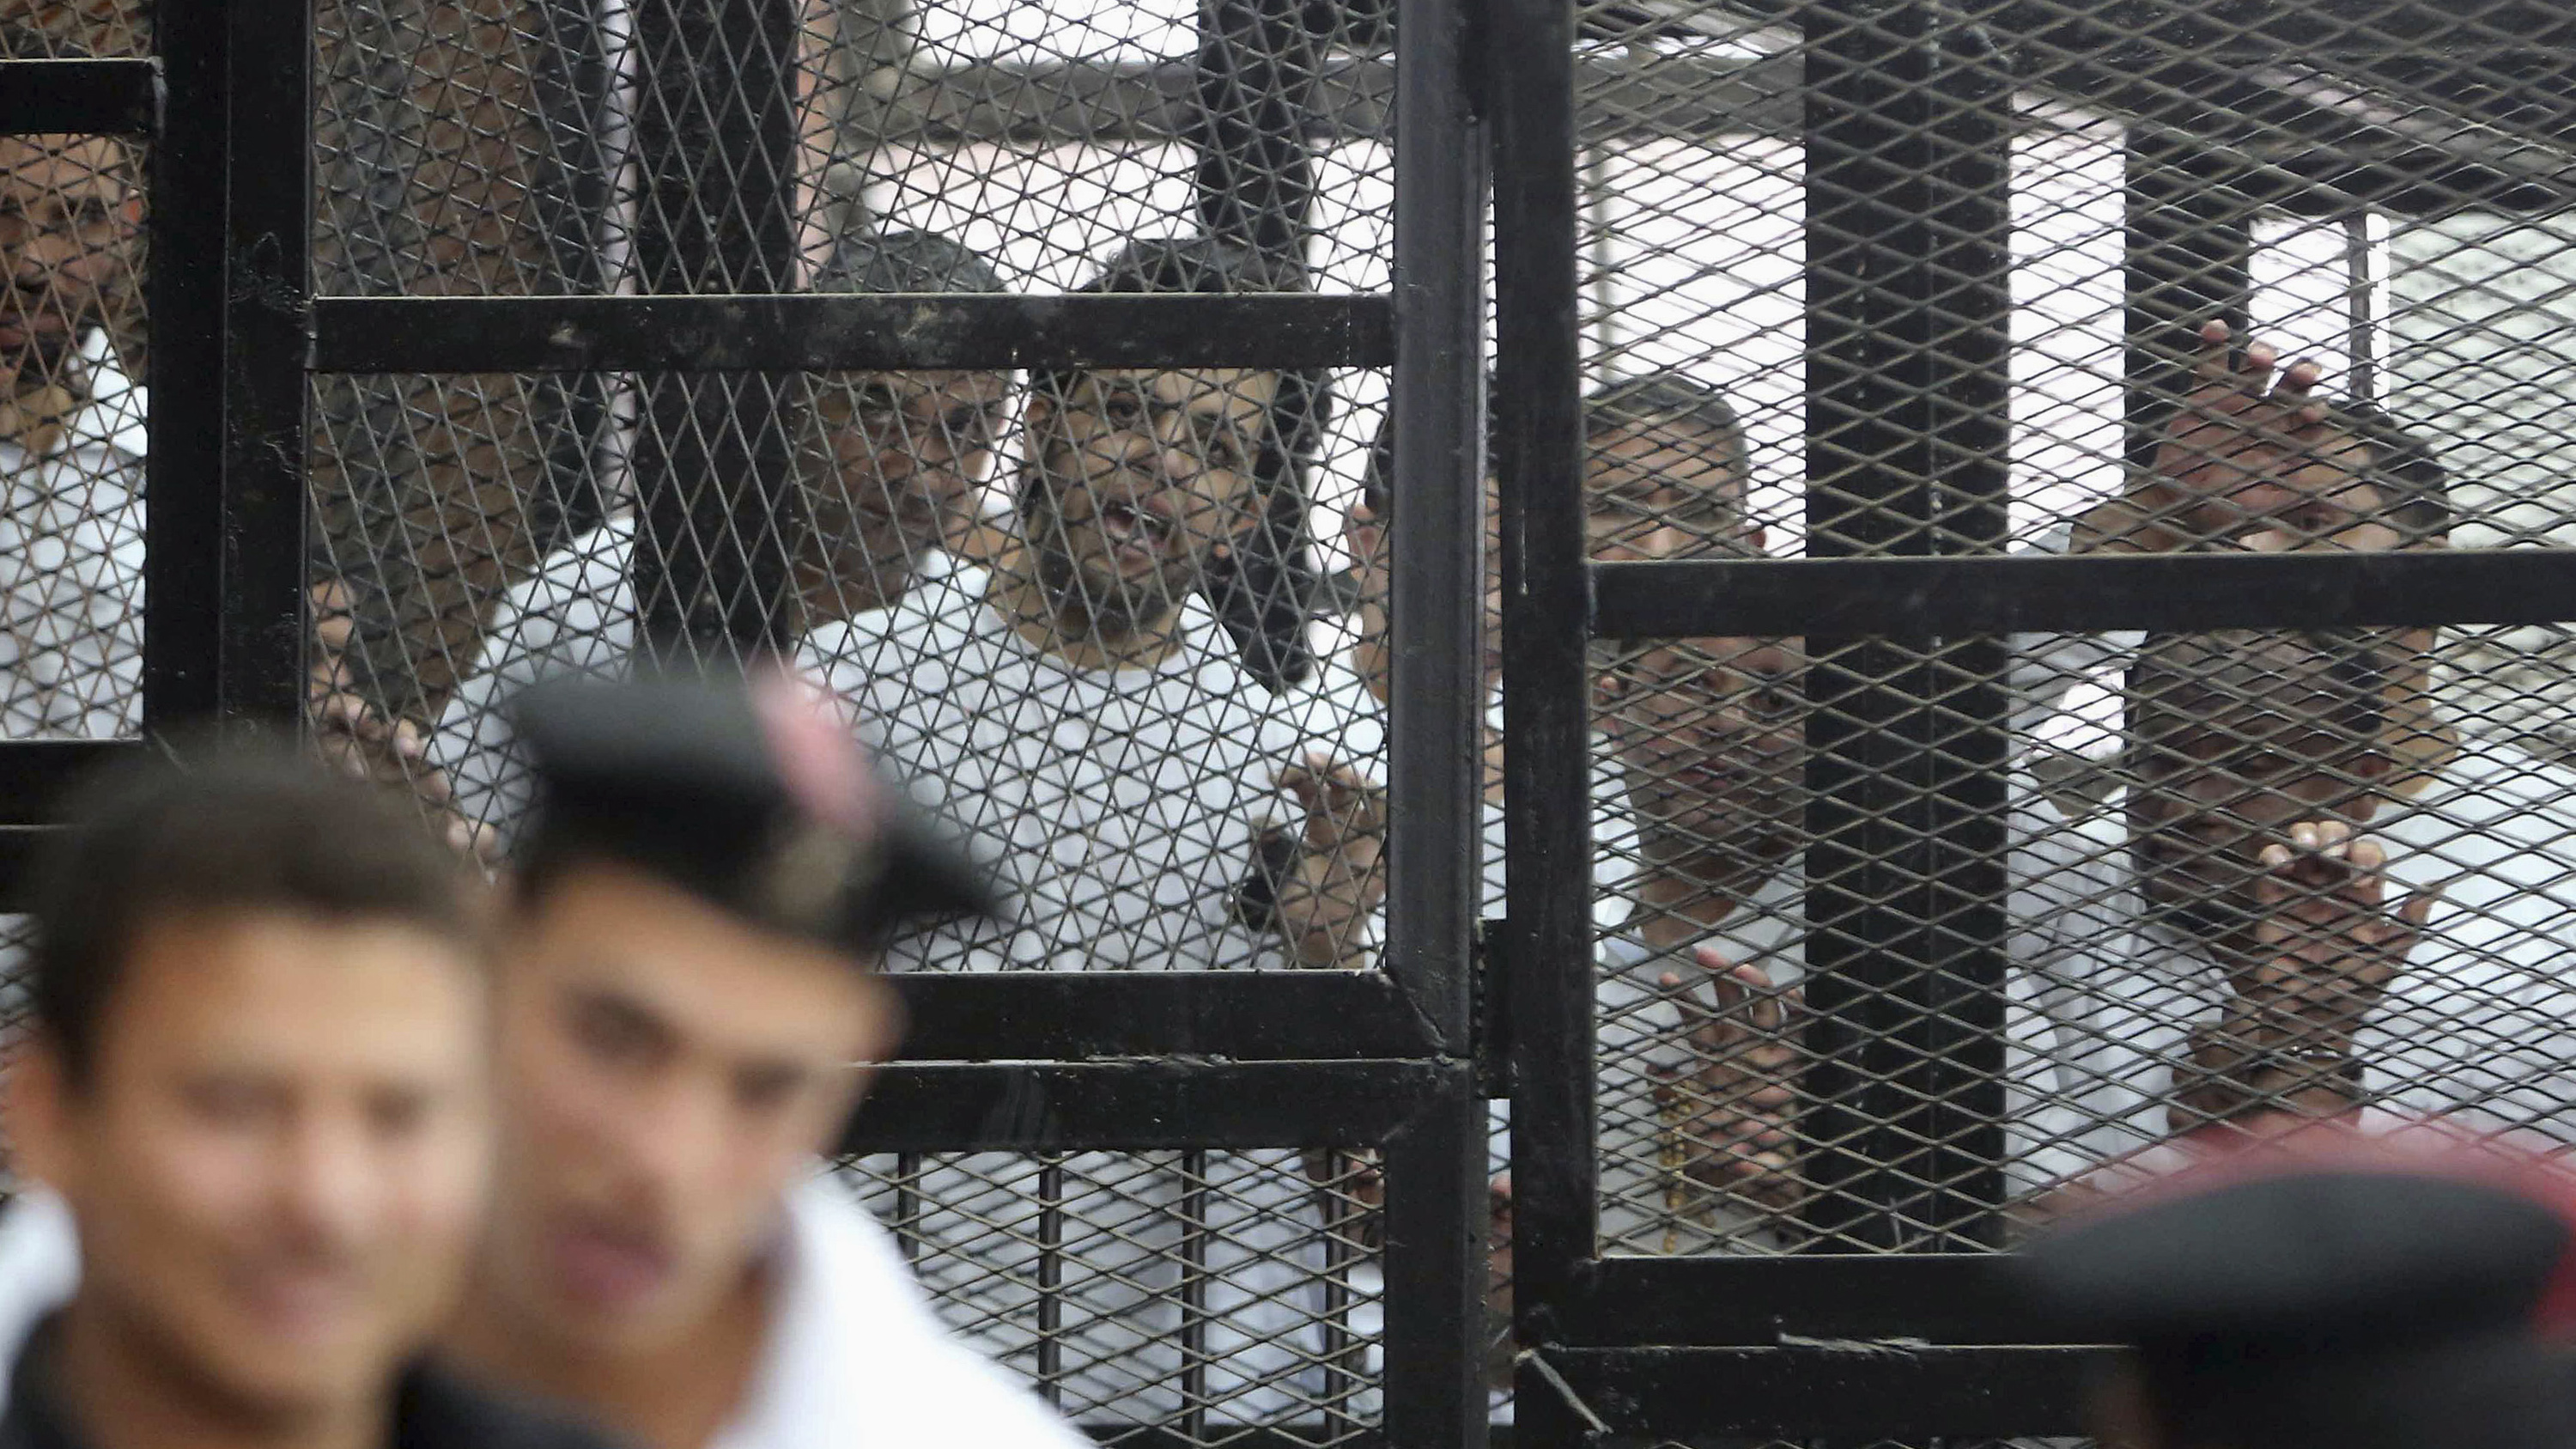 Al Jazeera's hunger striking journalist Abdullah Elshamy stands behind bars with other prisoners at a court in Cairo